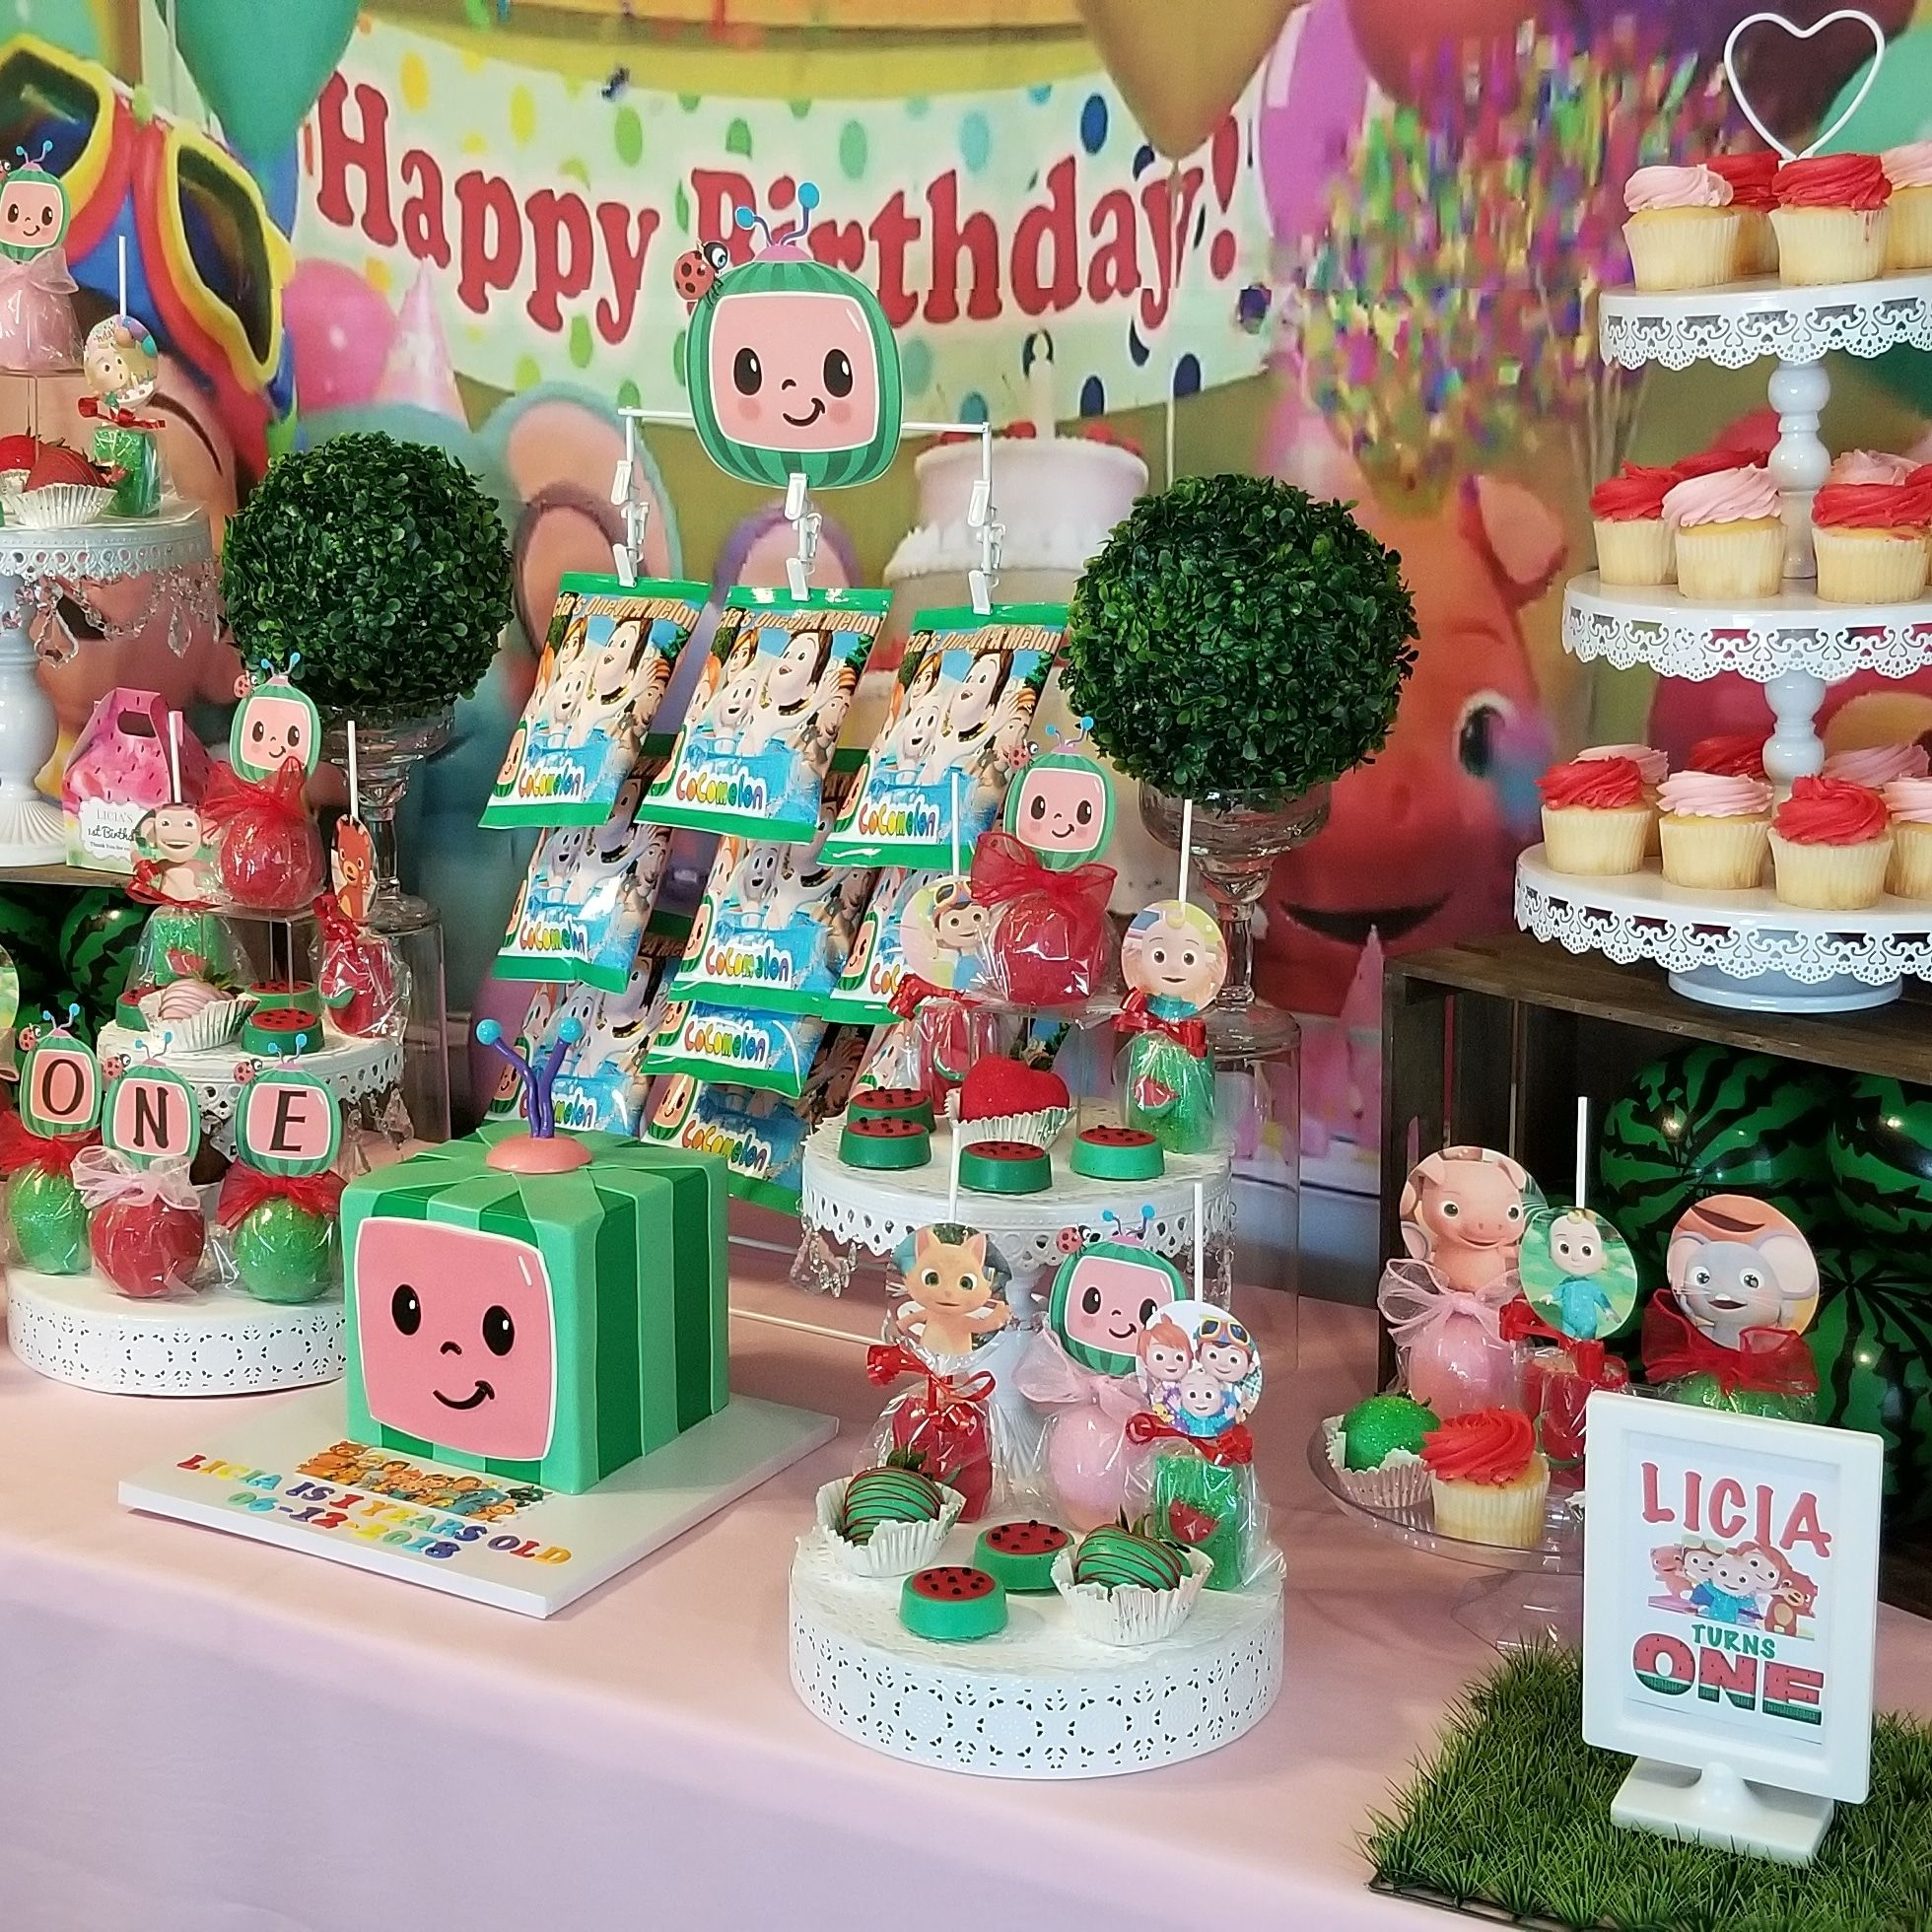 Cocomelon Dessert Table Decorations Kids Themed Birthday Parties 2nd Birthday Party For Girl Baby Birthday Party Theme